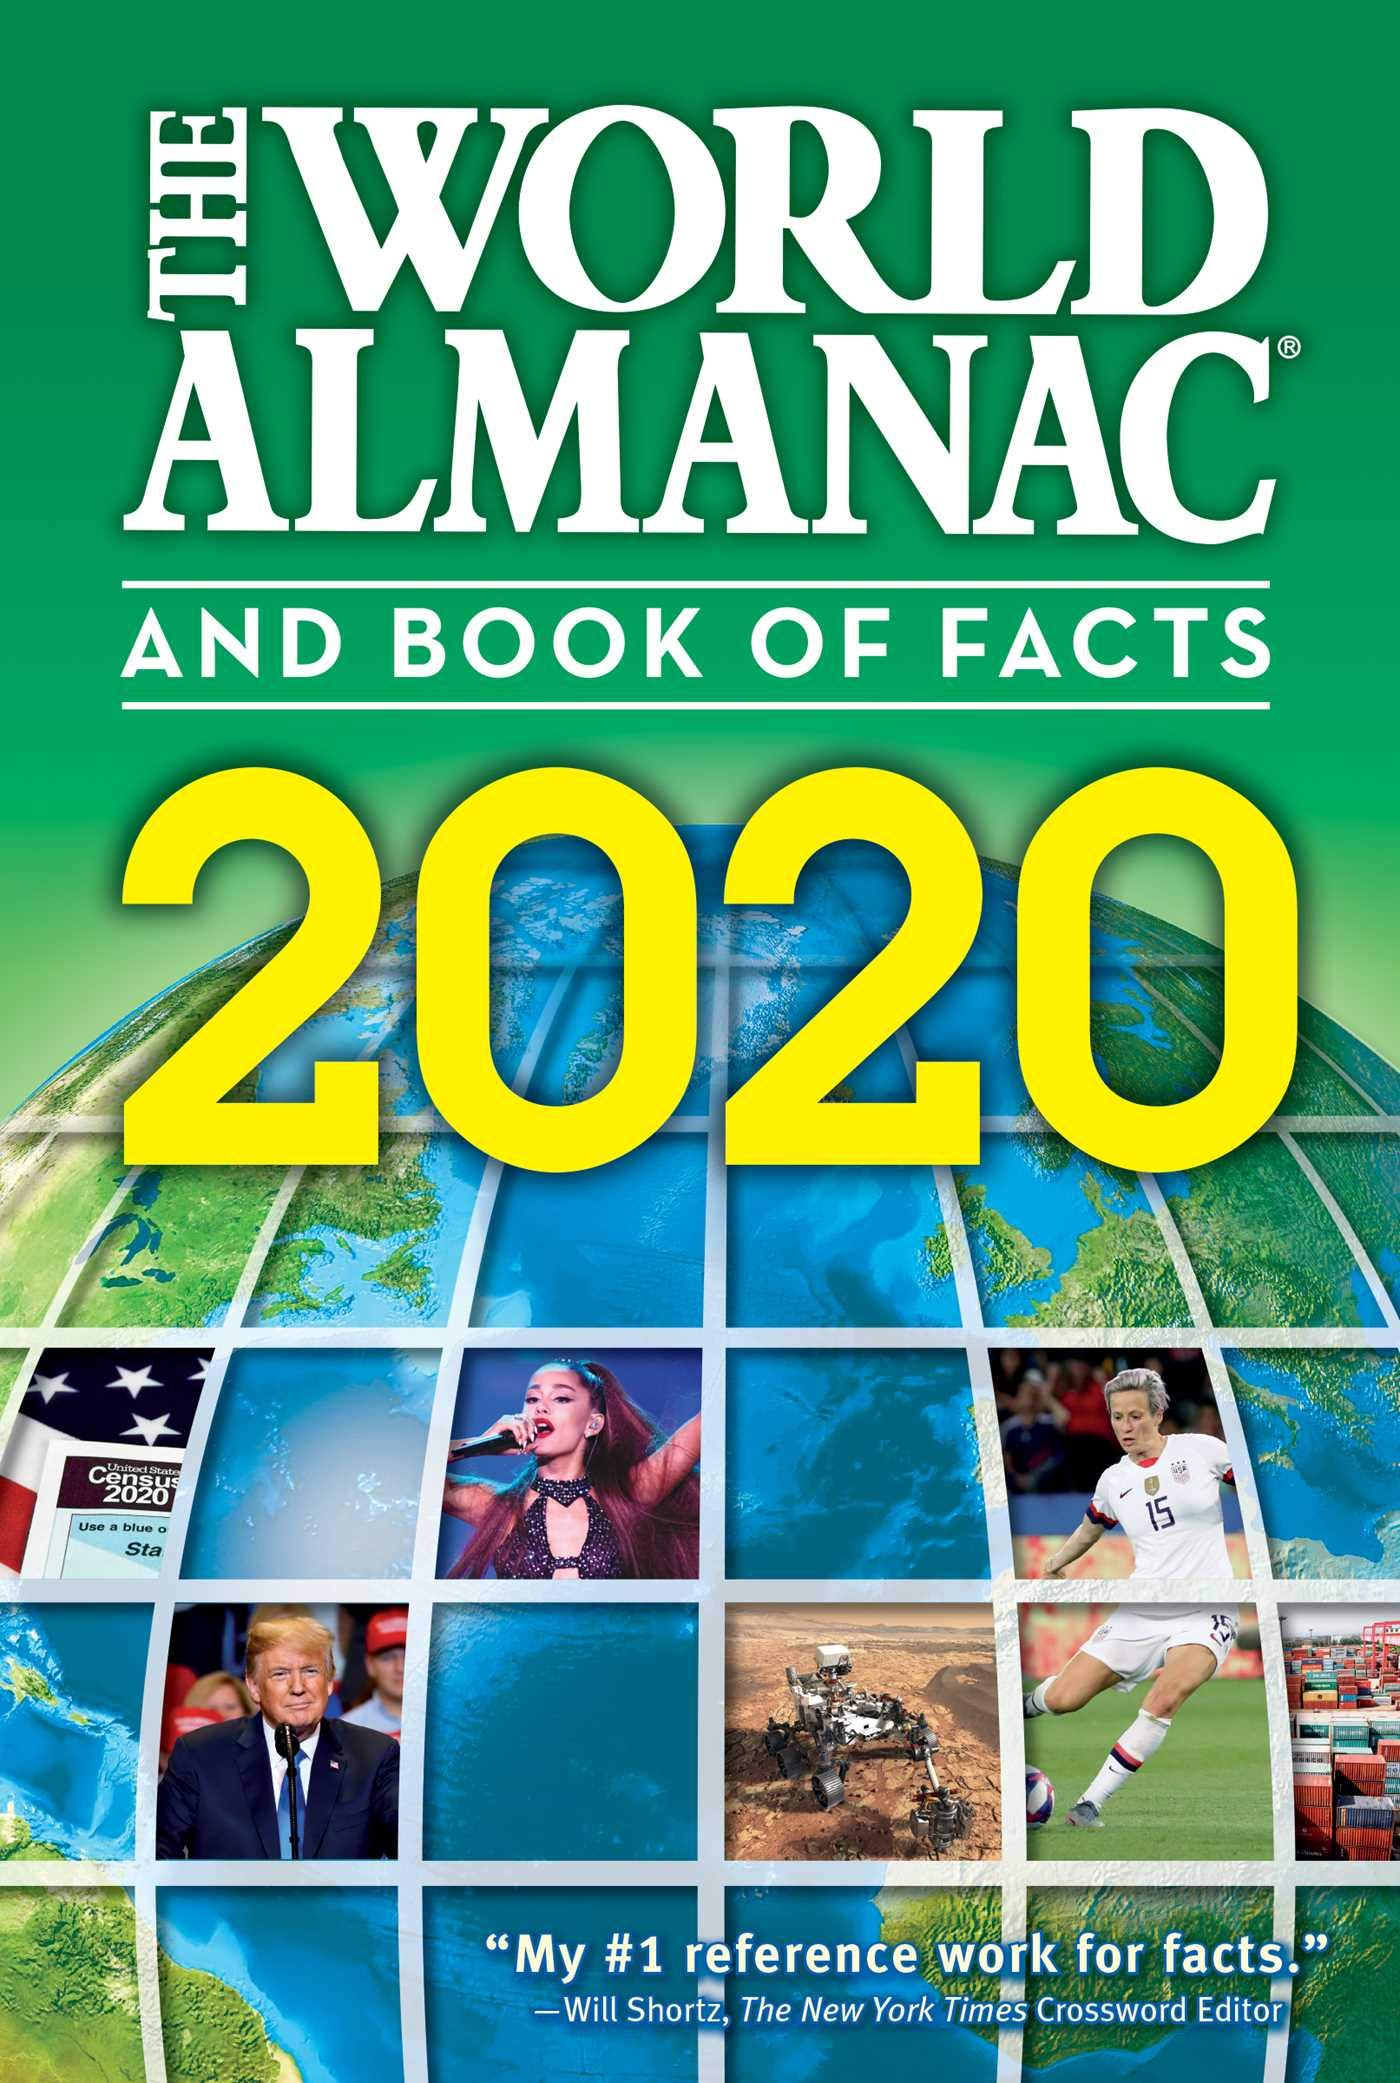 New York Times Best Sellers 2020.The World Almanac And Book Of Facts 2020 Sarah Janssen